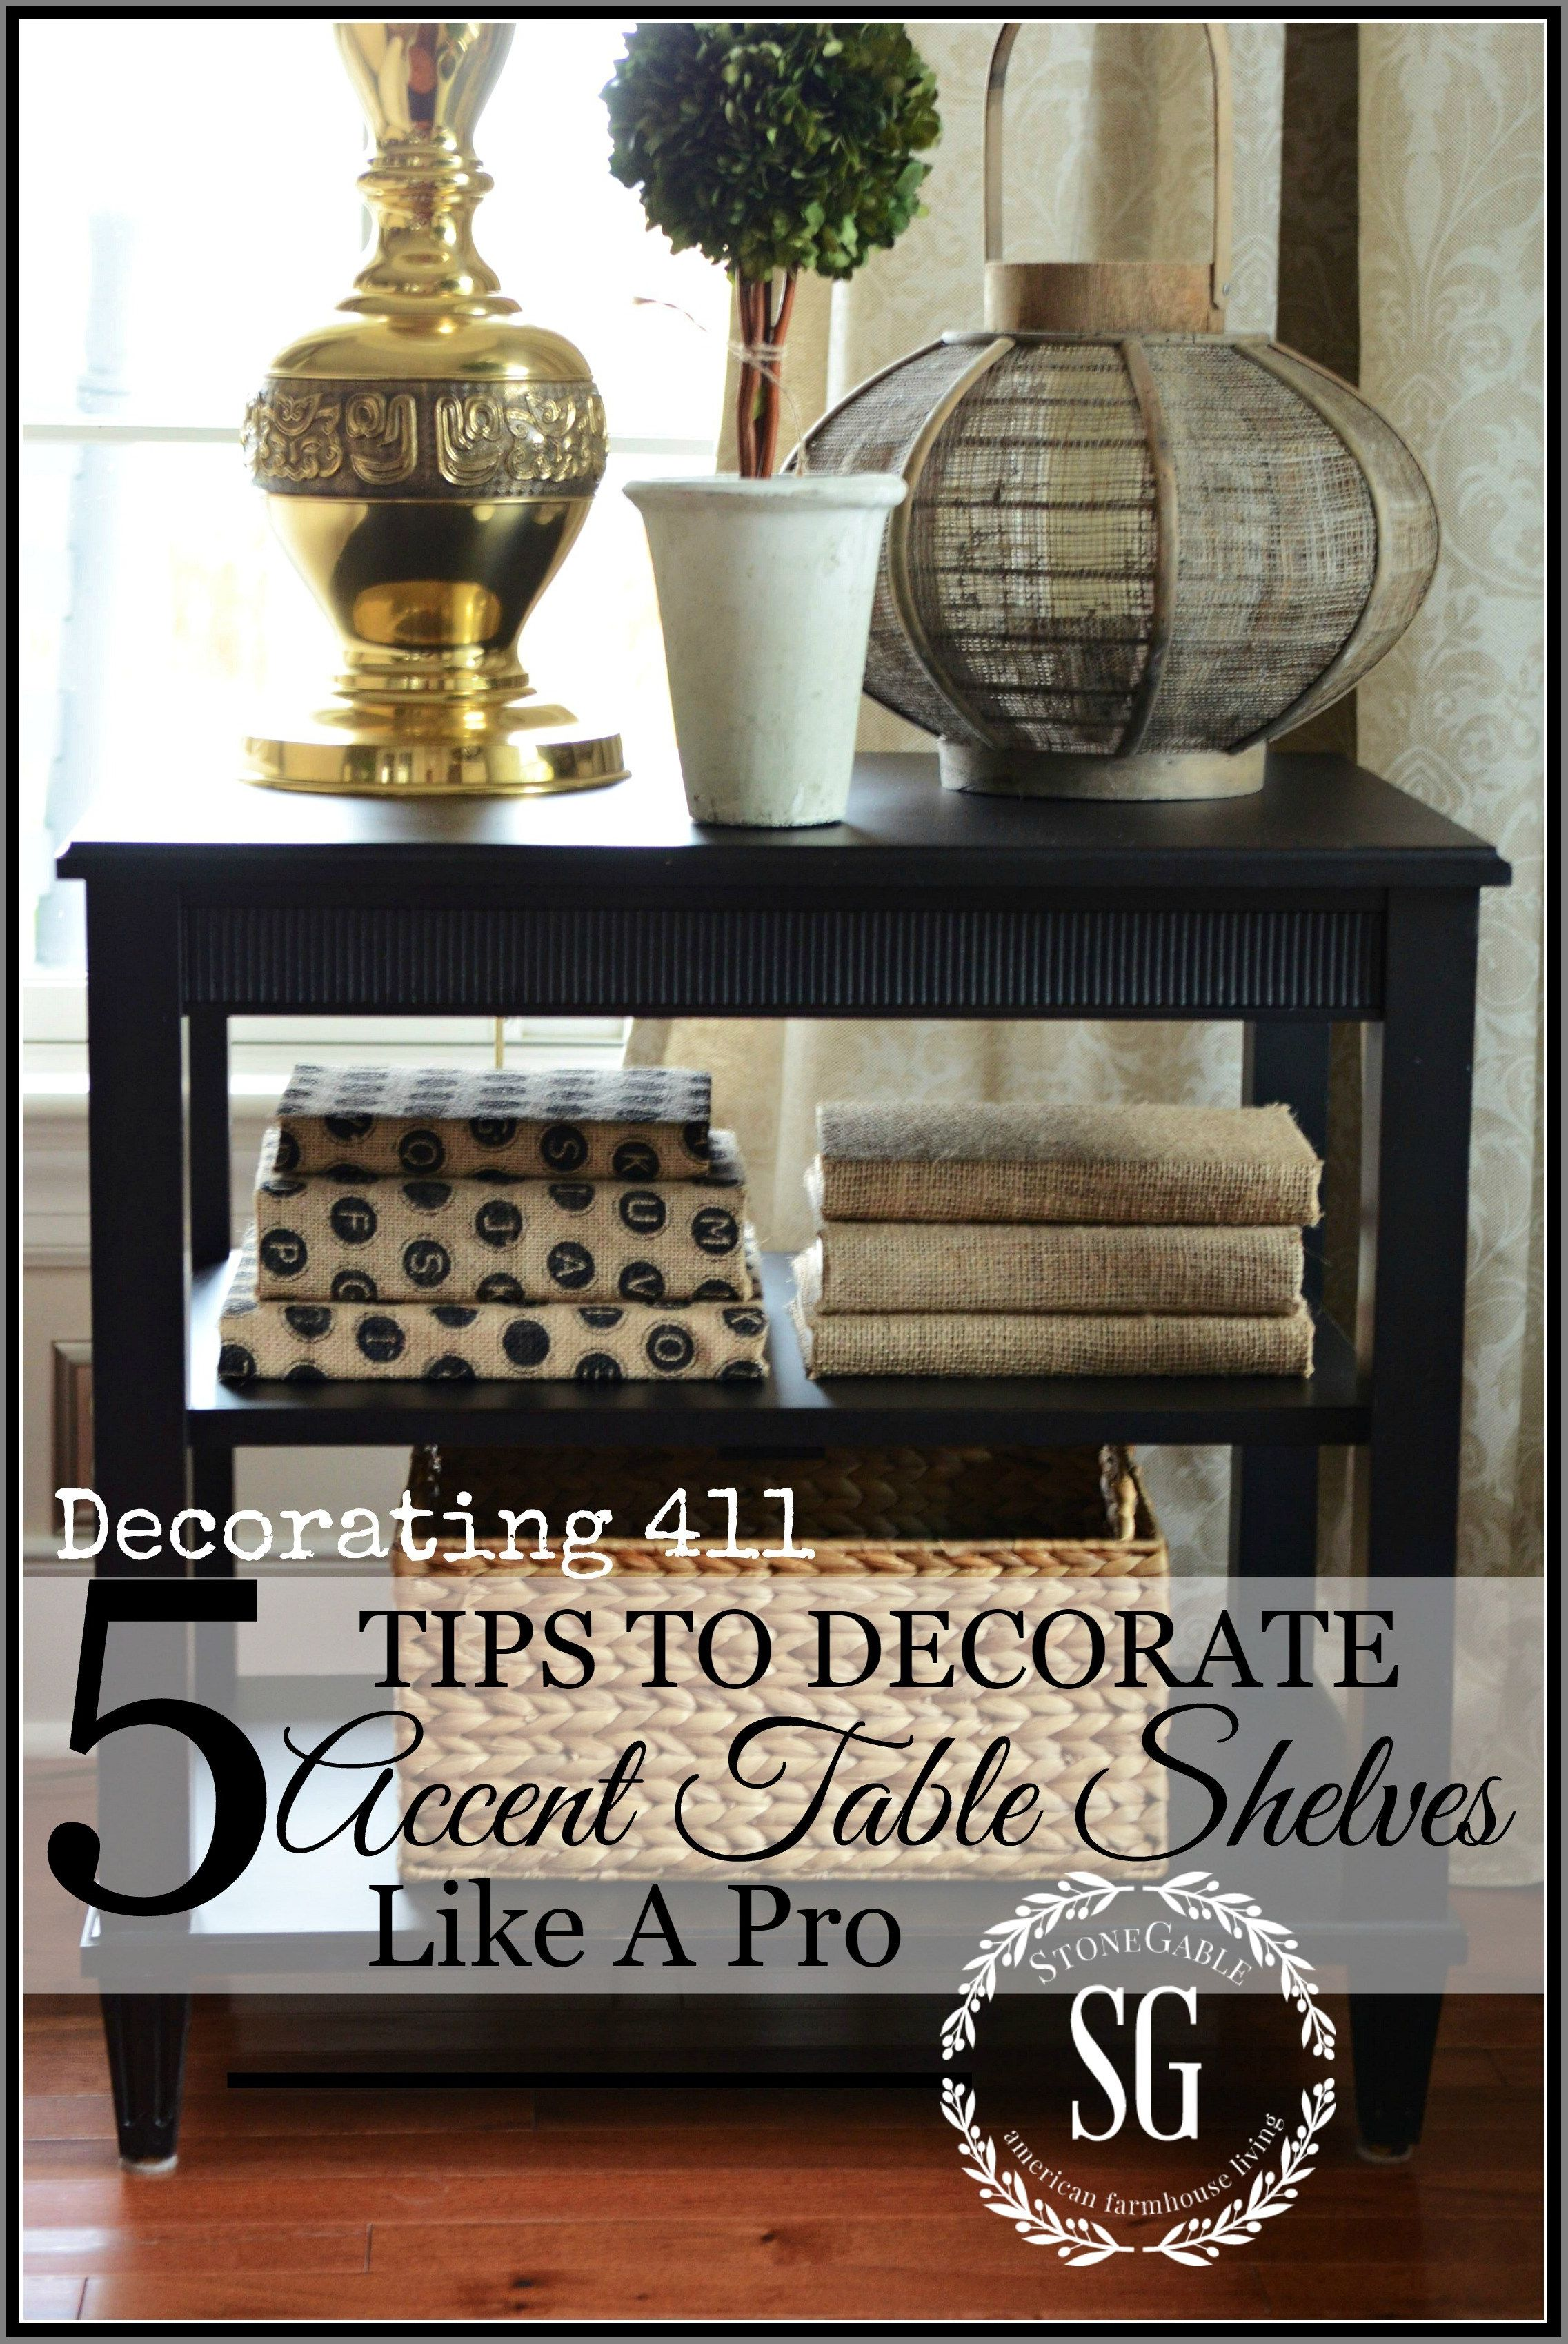 charming accent table decor modern kitchen designs new design ideas college dorm room small wooden legs windham side pottery barn black dining plain cloths rustic trunk coffee